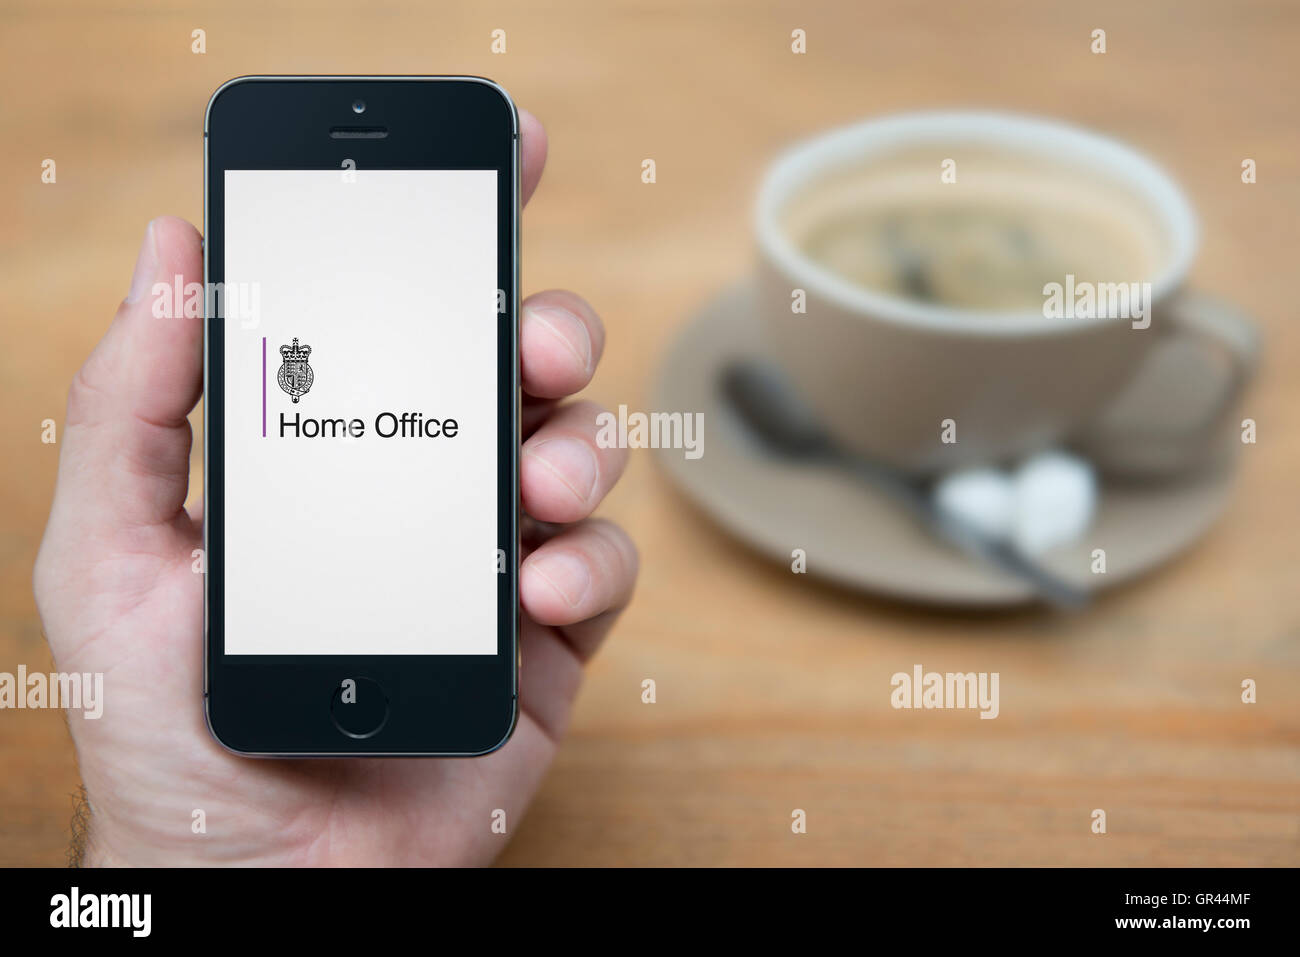 A man looks at his iPhone which displays the UK Government Home Office crest (Editorial use only). - Stock Image